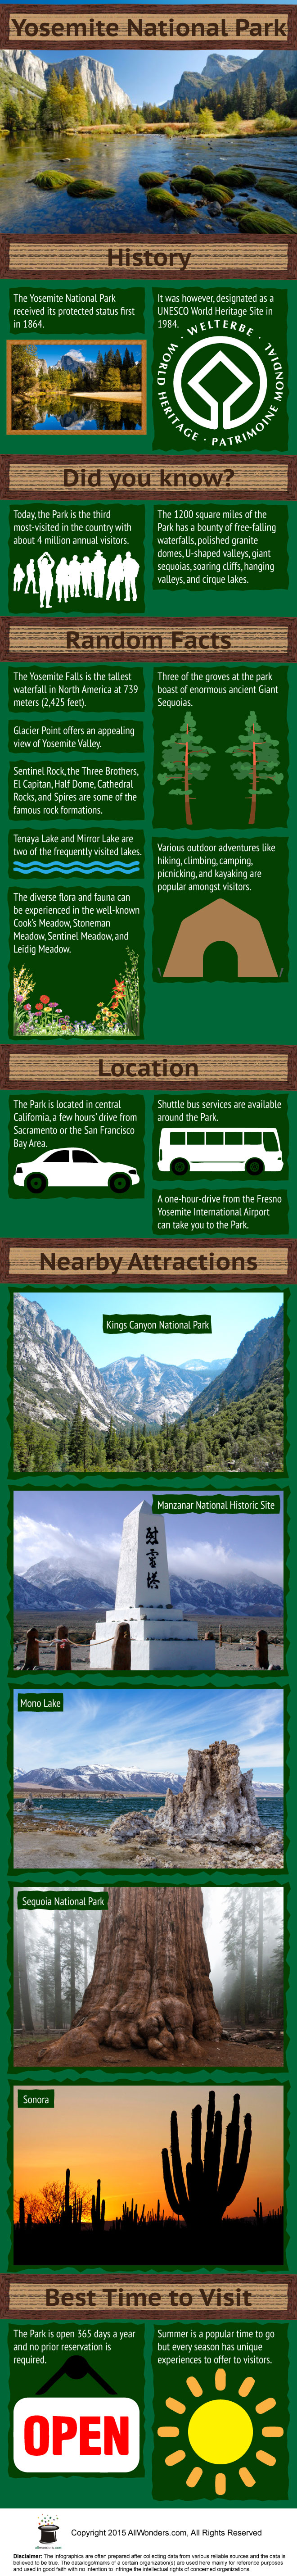 Yosemite National Park Infographic